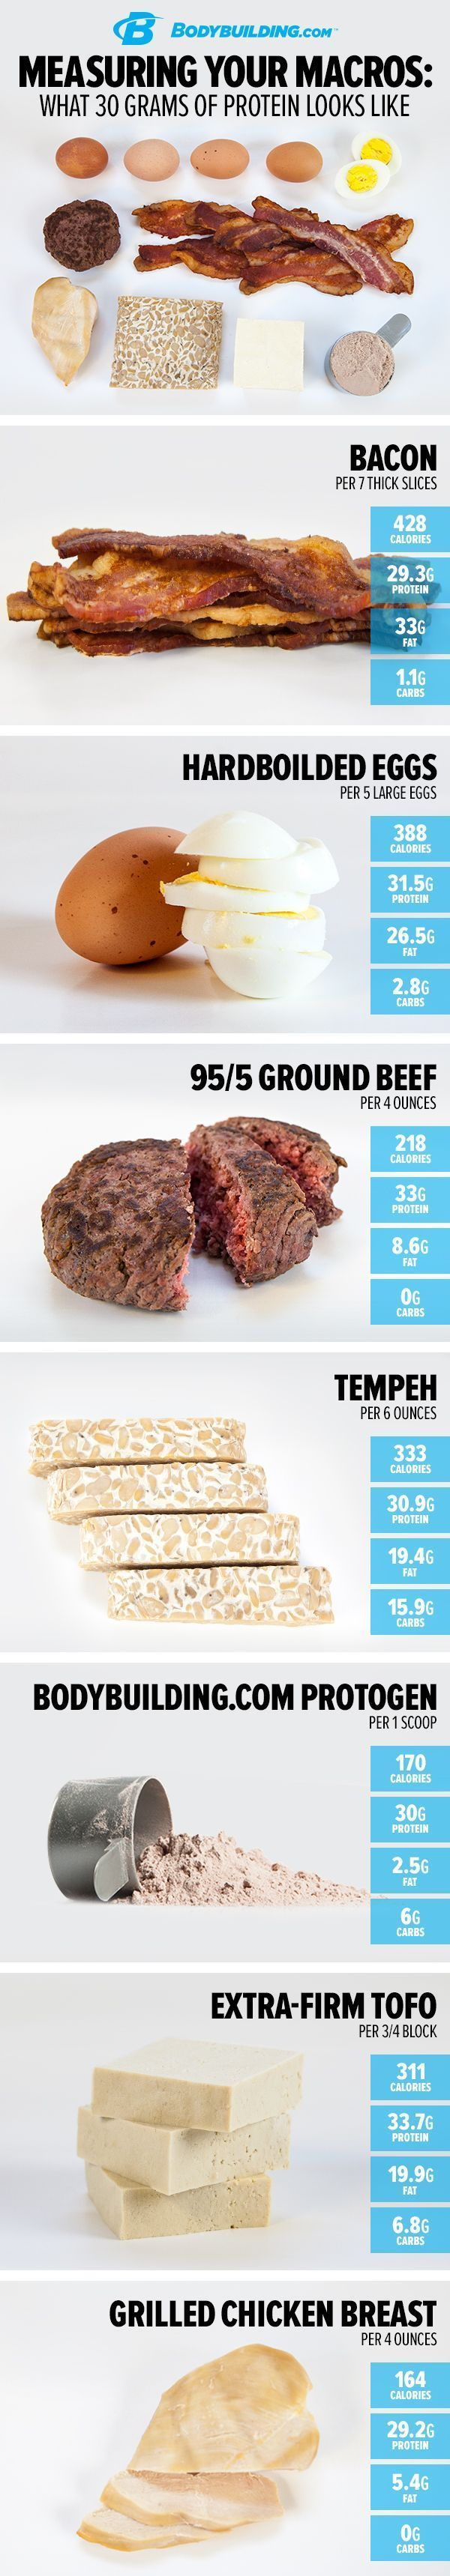 See more here ► https://www.youtube.com/watch?v=-pwmXYq0RQk Tags: what is the best and quickest way to lose weight, best way for women to lose weight, best way to lose weight in 3 weeks - Measuring Your Macros: What 30 Grams of Protein Looks Like! Want to build muscle and lose fat? Then you need protein! Here's how much you need and how to measure it for each meal. Bodybuilding.com #exercise #diet #workout #fitness #health